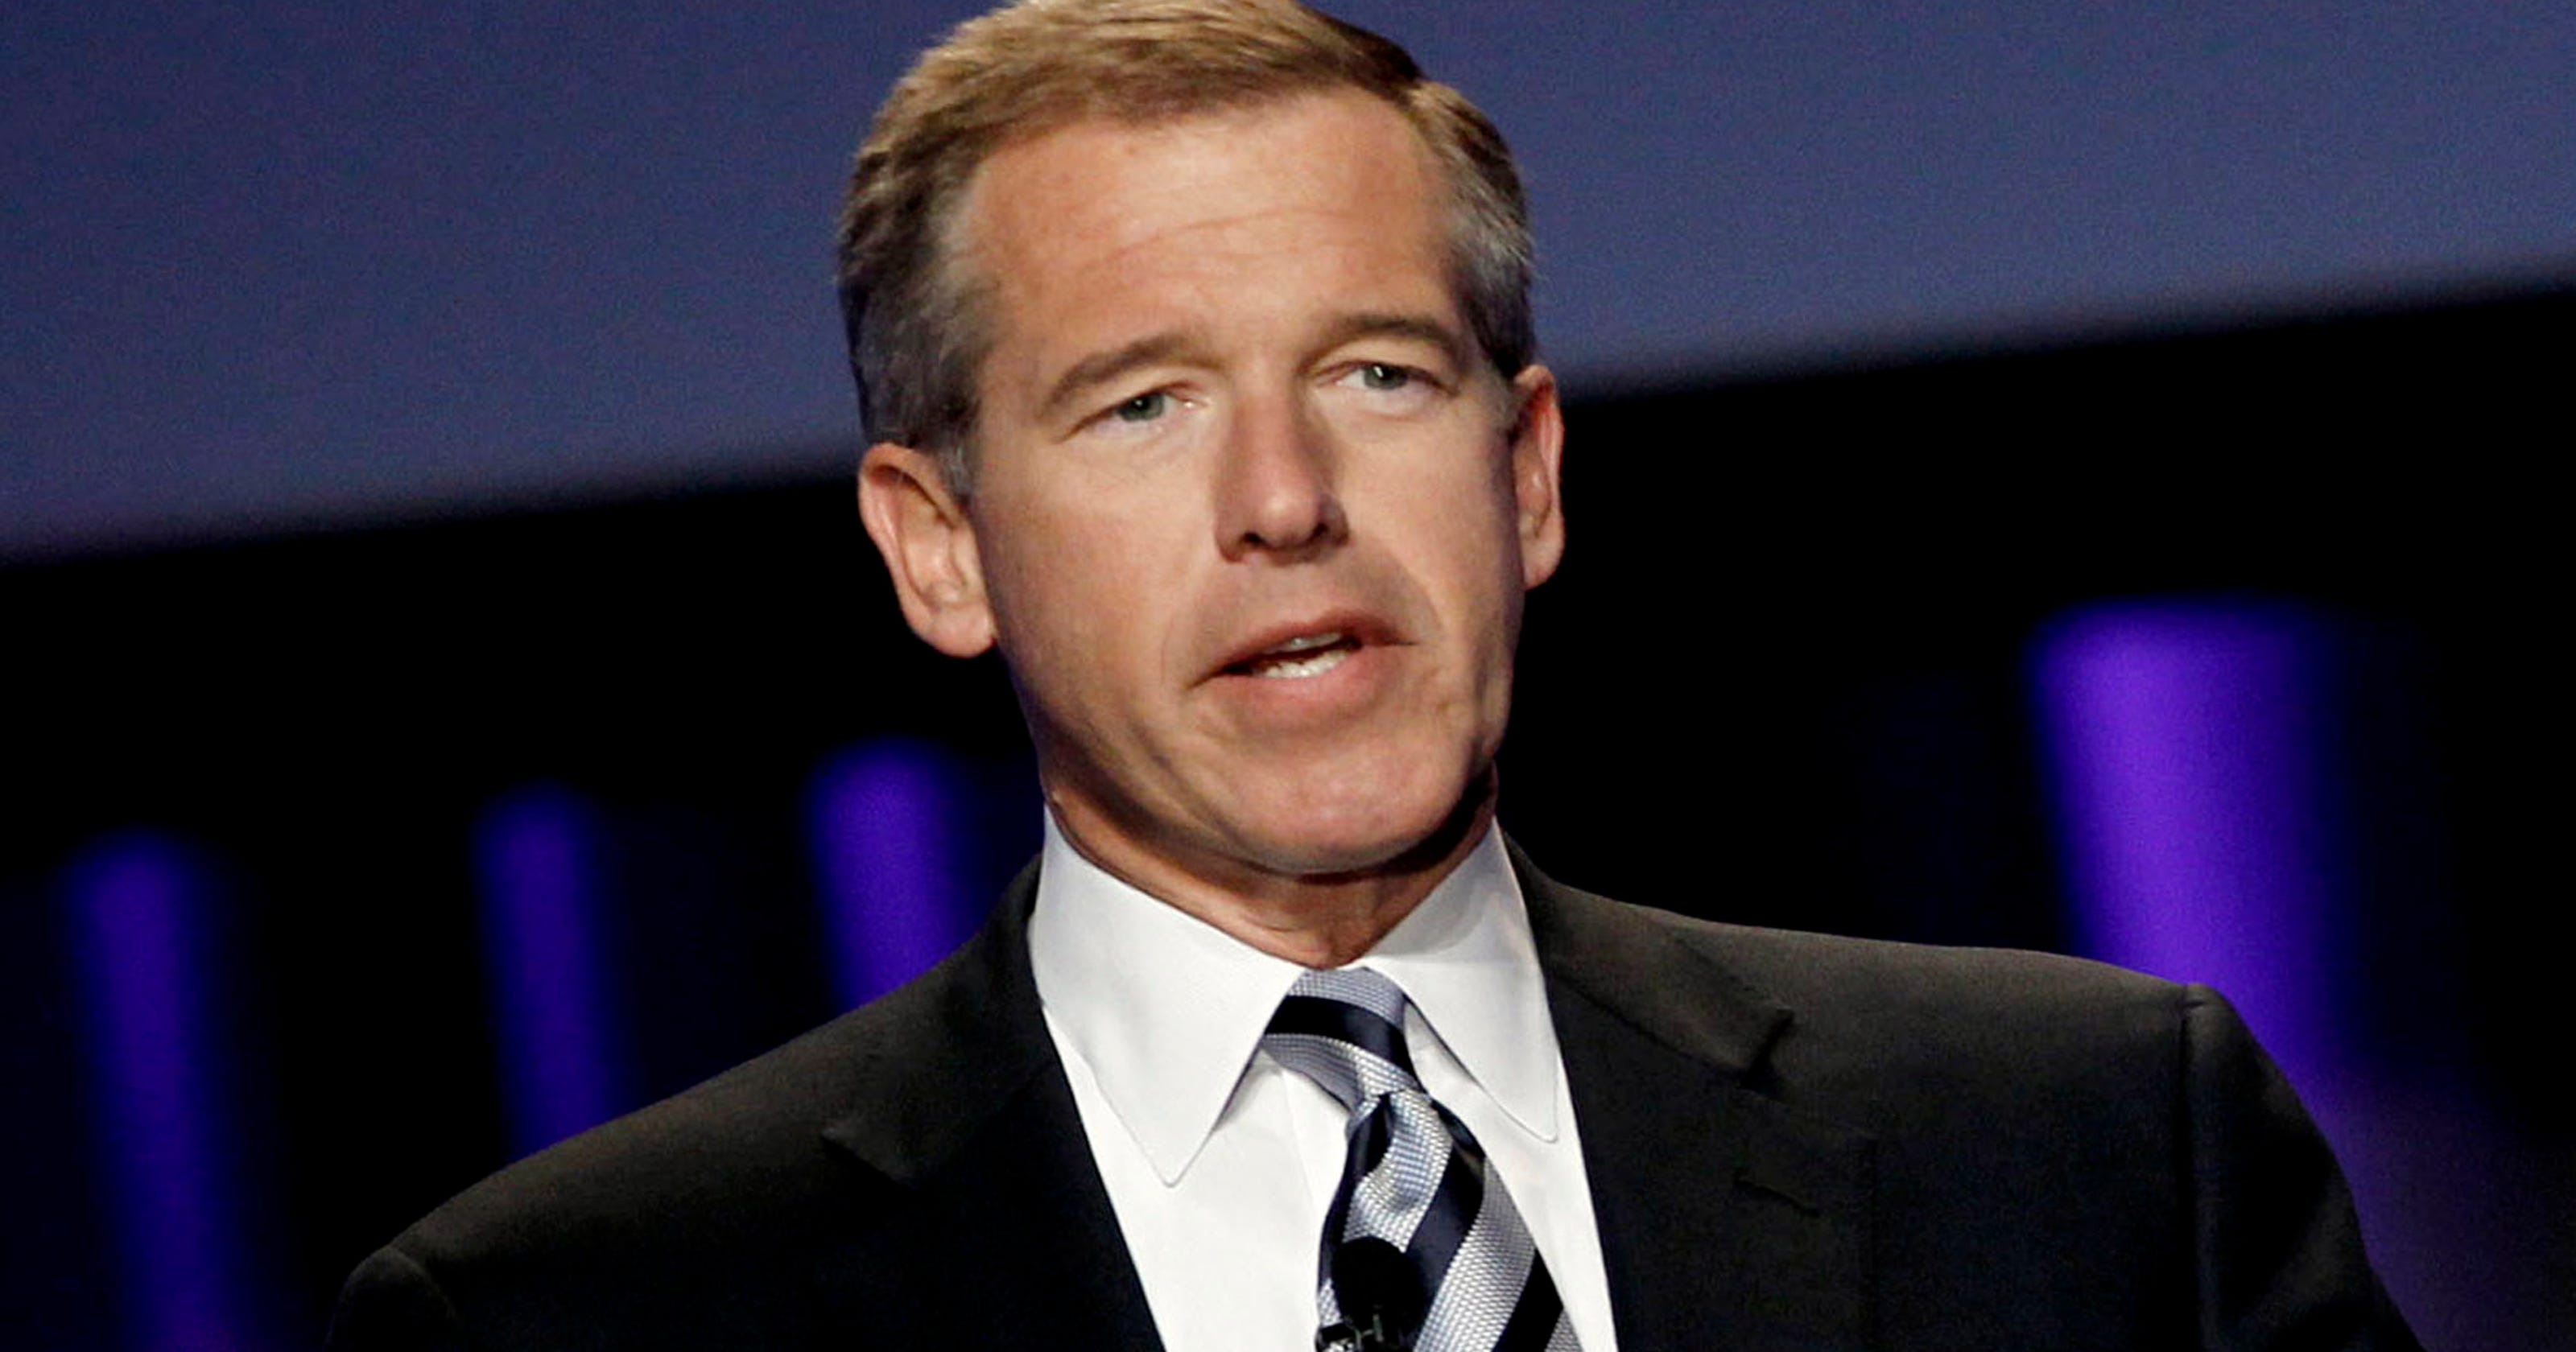 NBC: Brian Williams suspended for six months